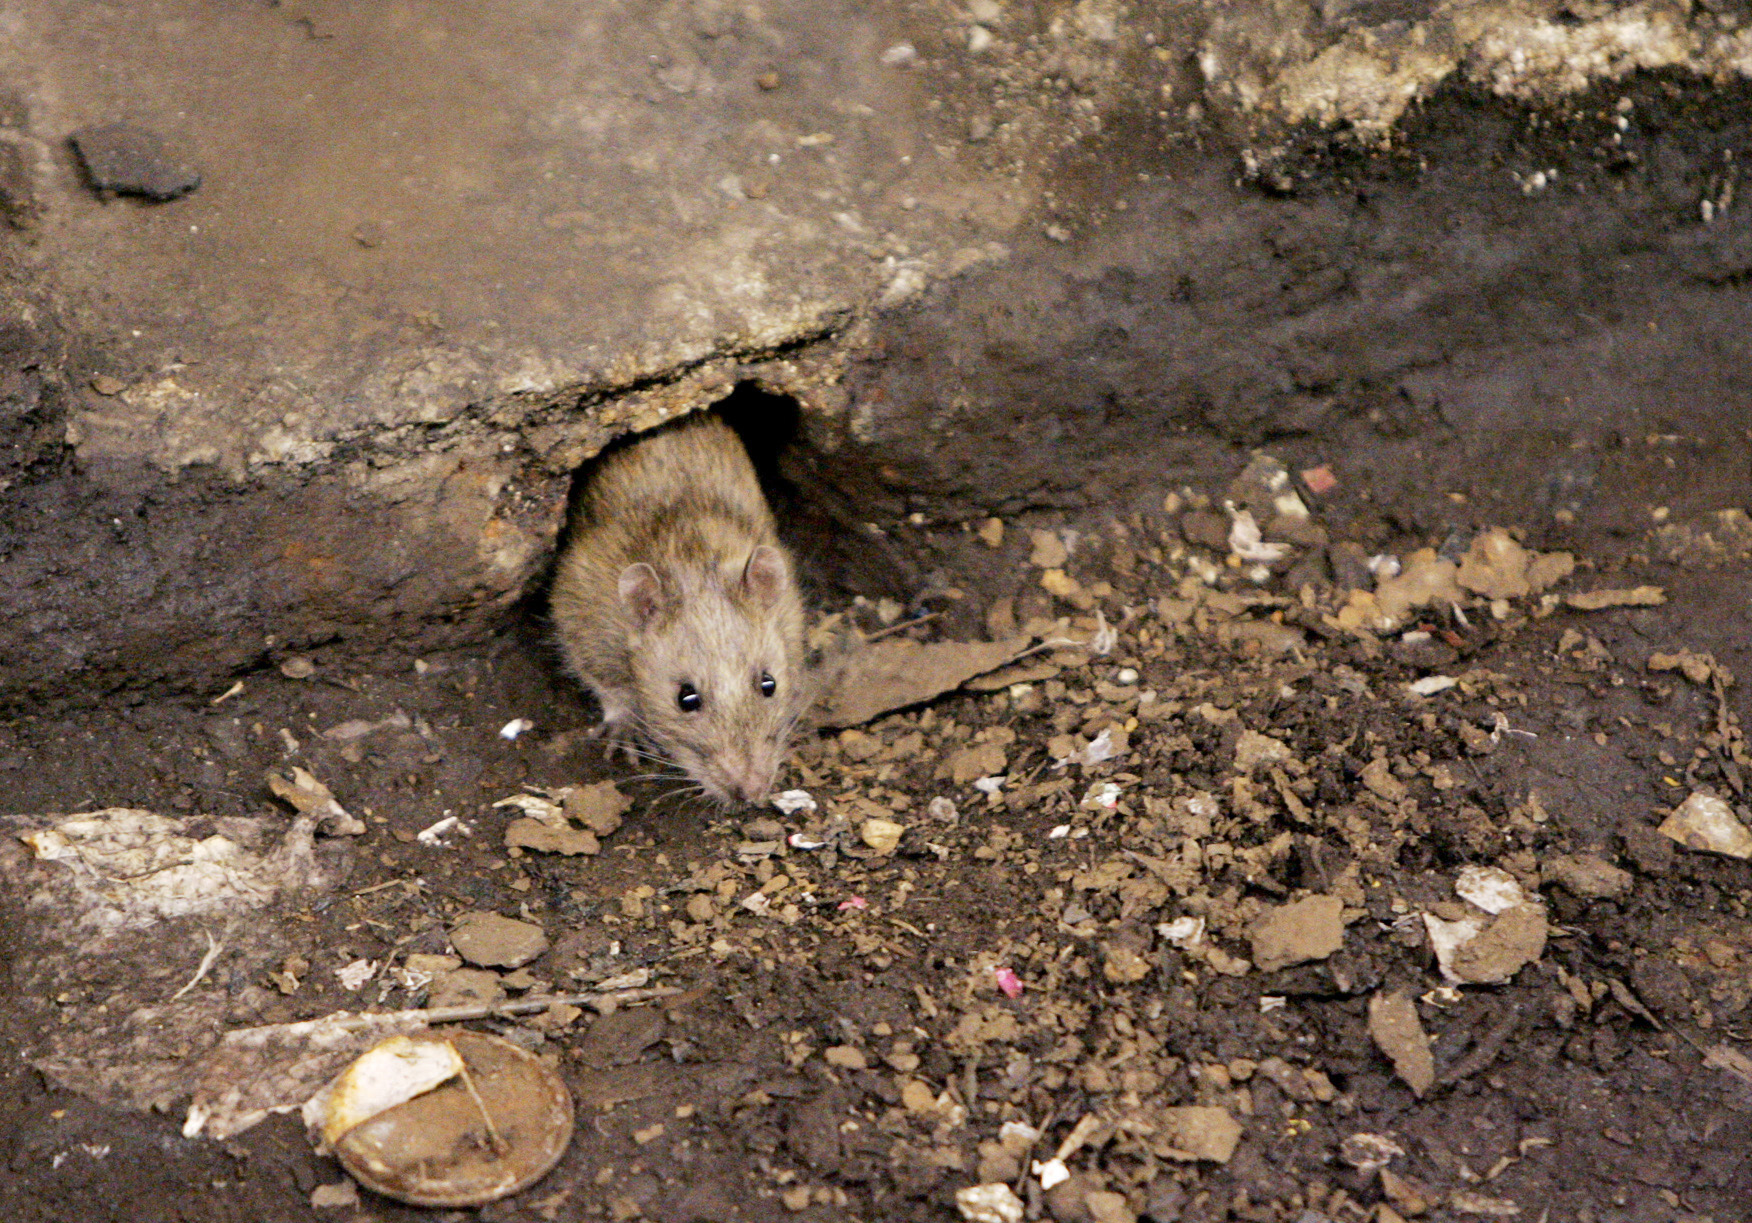 New York City Rats Fleas Could Carry Bubonic Plague Cbs News